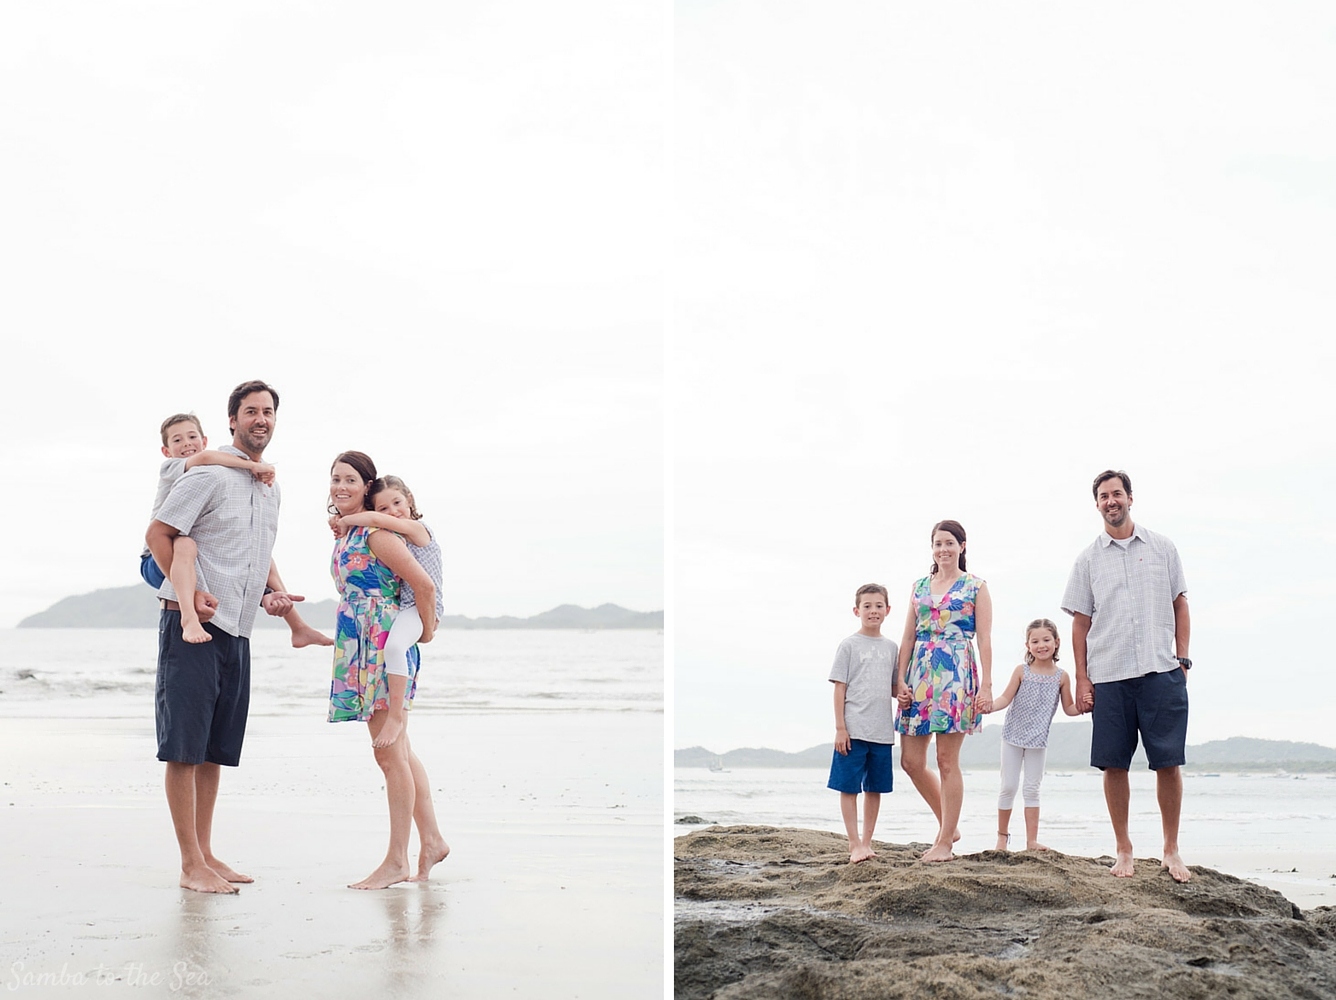 Family portraits on the beach in Tamarindo, Costa Rica. Photographed by Kristen M. Brown, Samba to the Sea Photography.